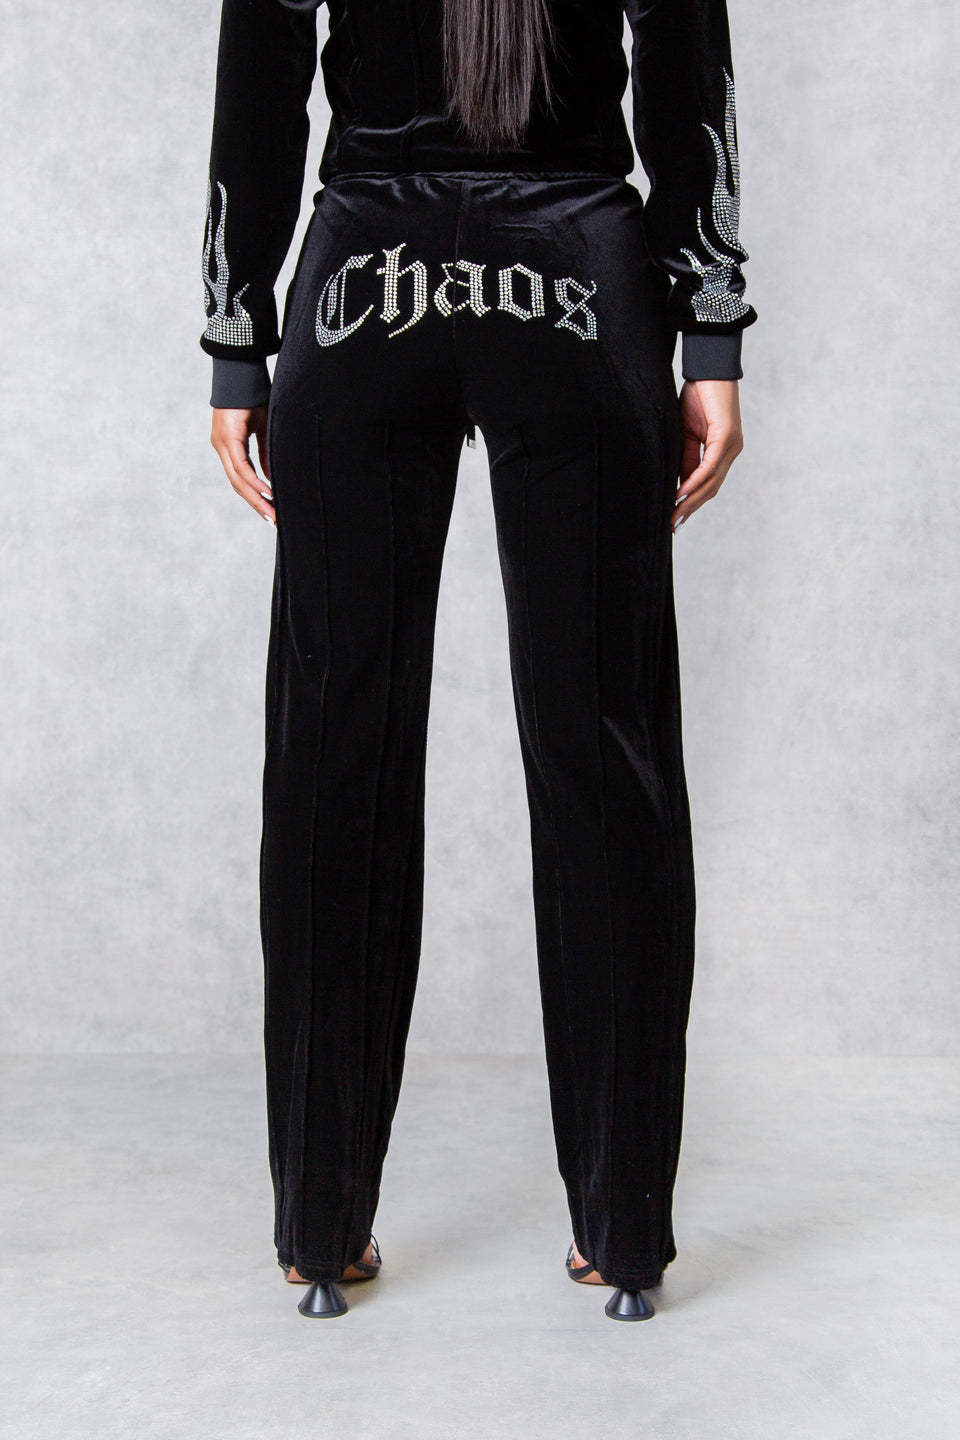 Chaos Graffiti Oversized Sweatshirt - Black